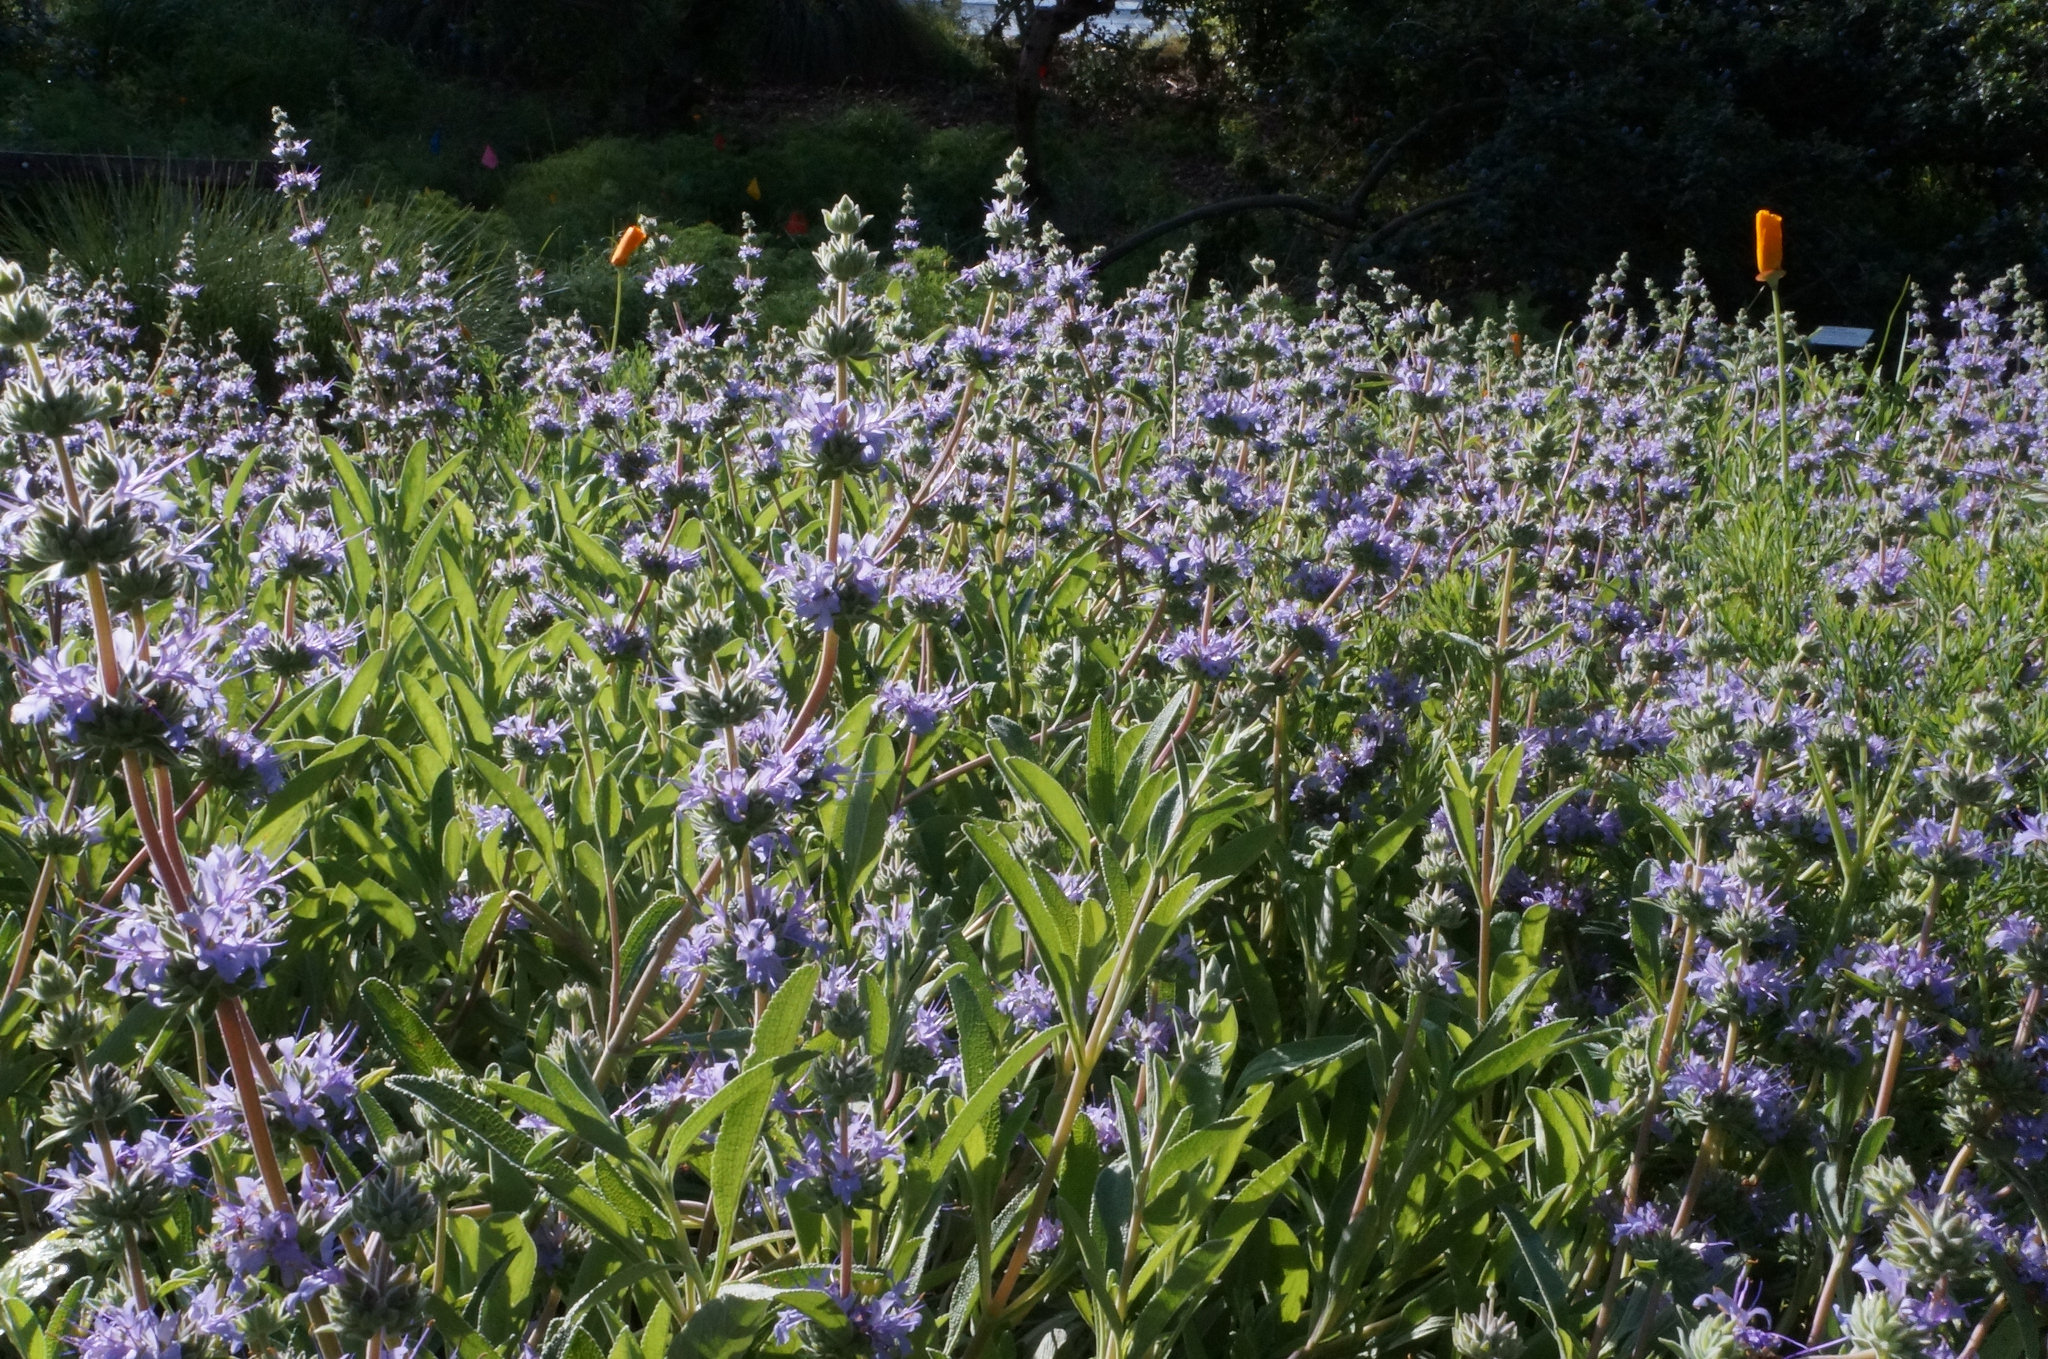 Salvia 'Bee's Bliss' in the Marry Wattis Brown Garden of California Native Plants